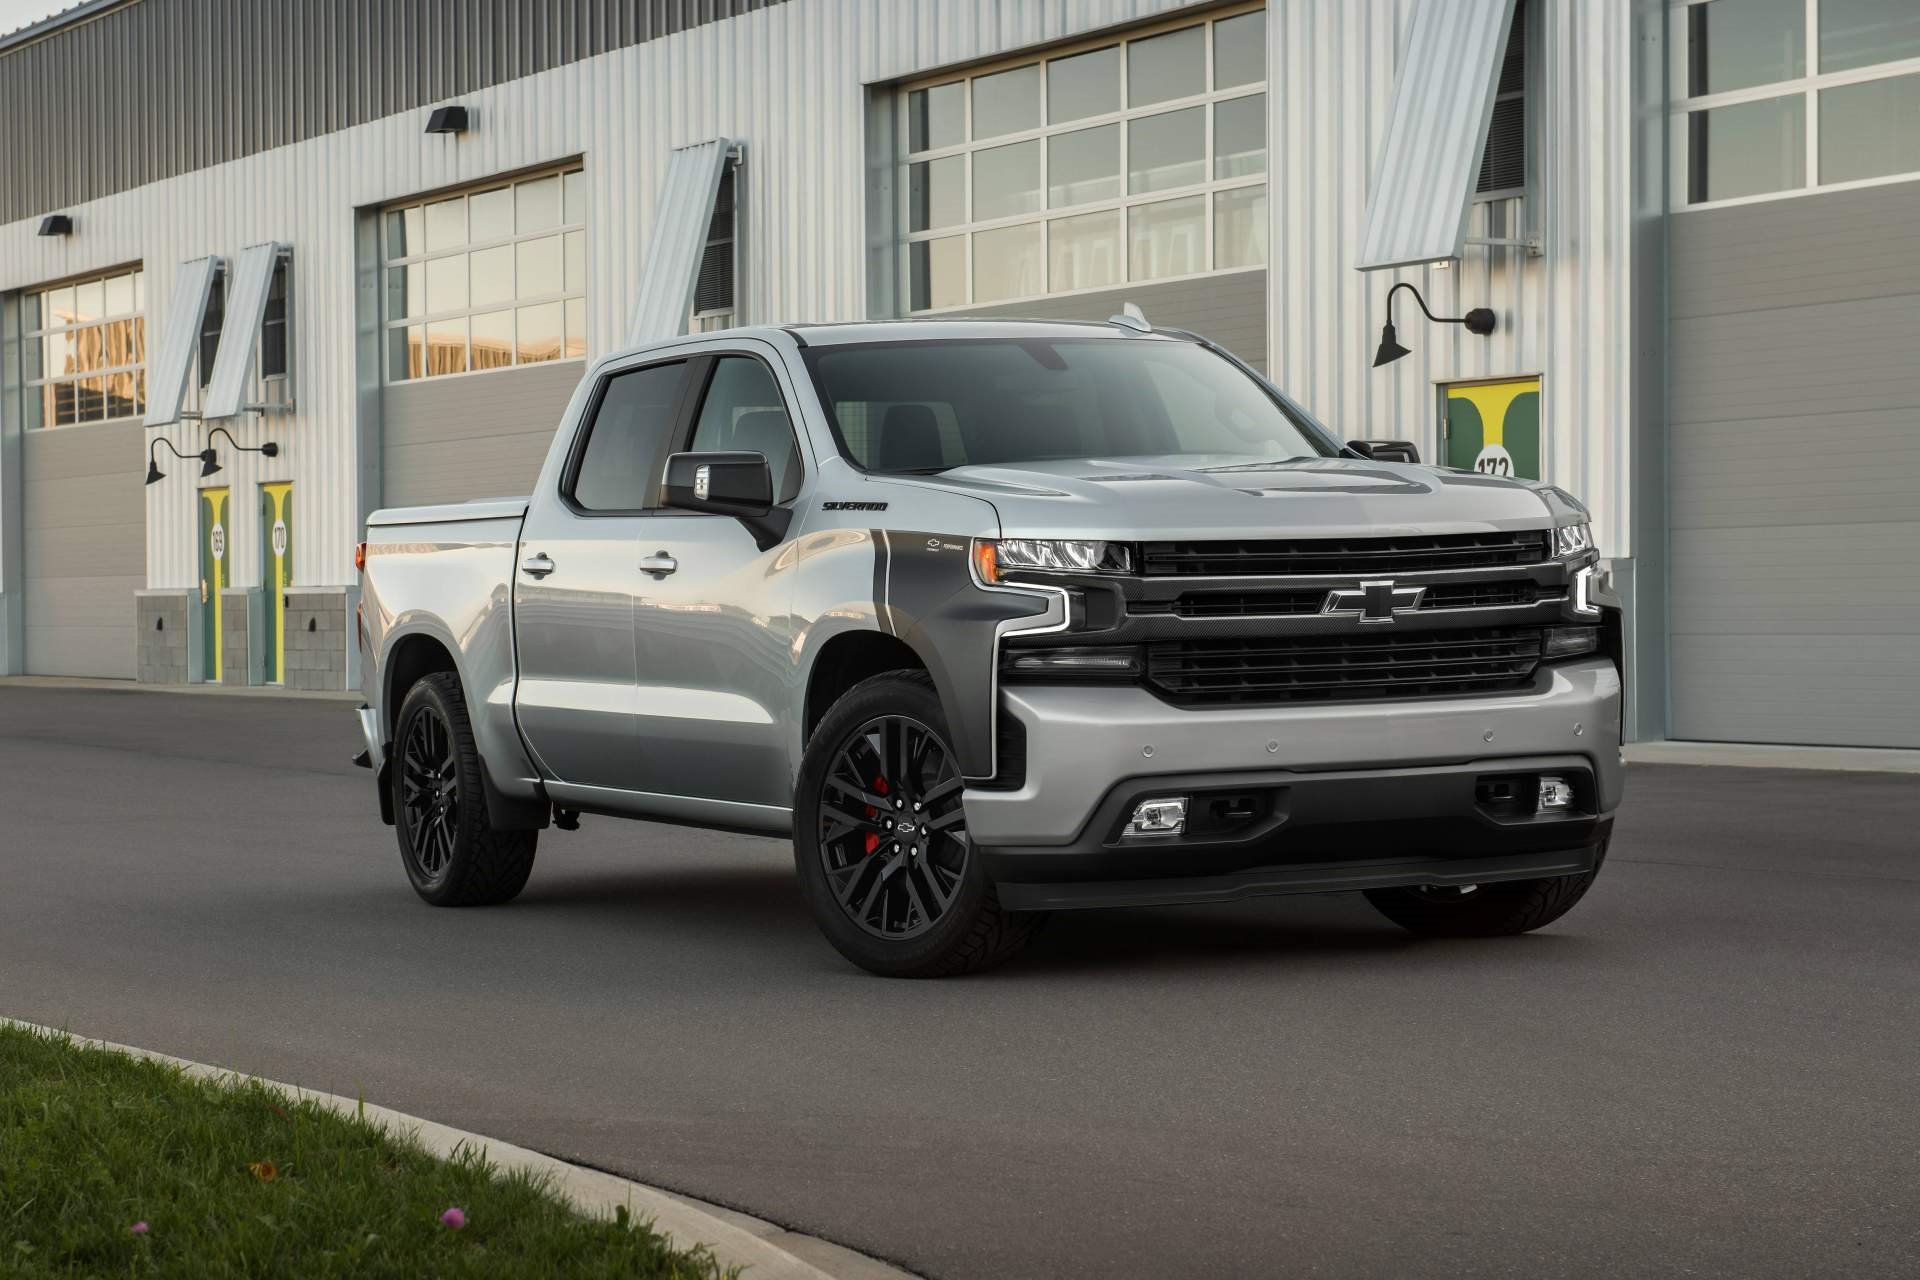 New 2019 Chevrolet-Silverado 1500 LD LT Z71 Silverado 1500 LD LT Z71 for sale $44,000 at M and V Leasing in Brooklyn NY 11223 1